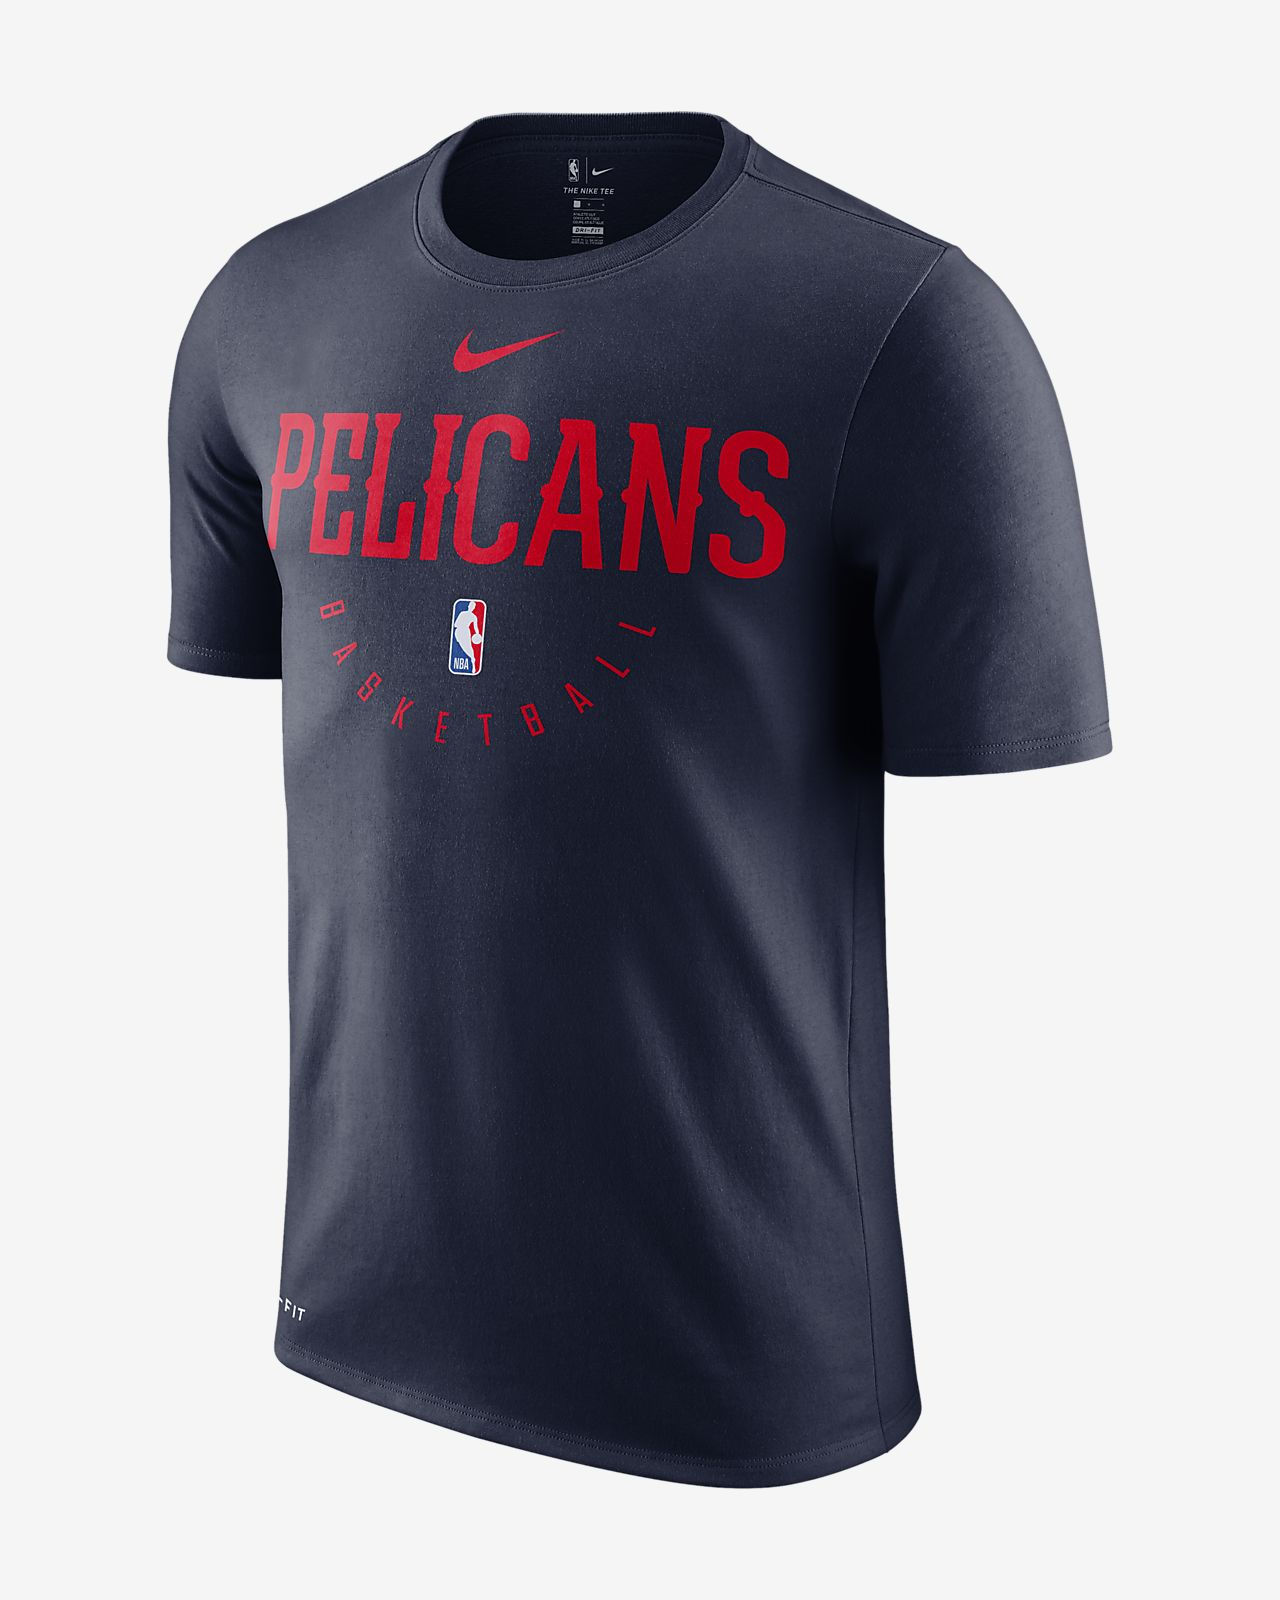 New Orleans Pelicans Nike Dri-FIT Men's NBA T-Shirt